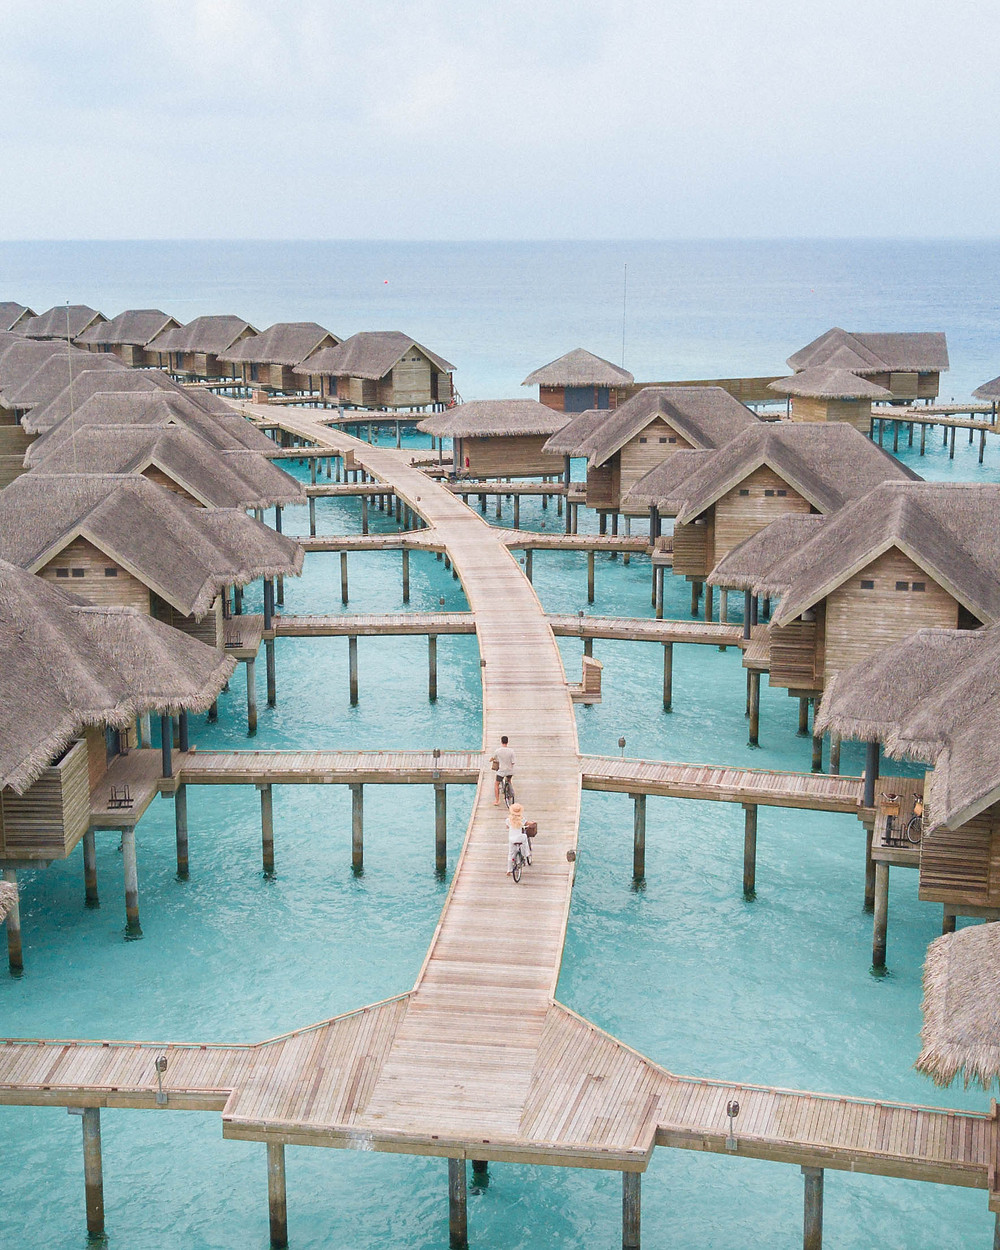 Vakkaru Resorts overwater bungalows. We cycled around the island bare-foot on complimentary push bikes